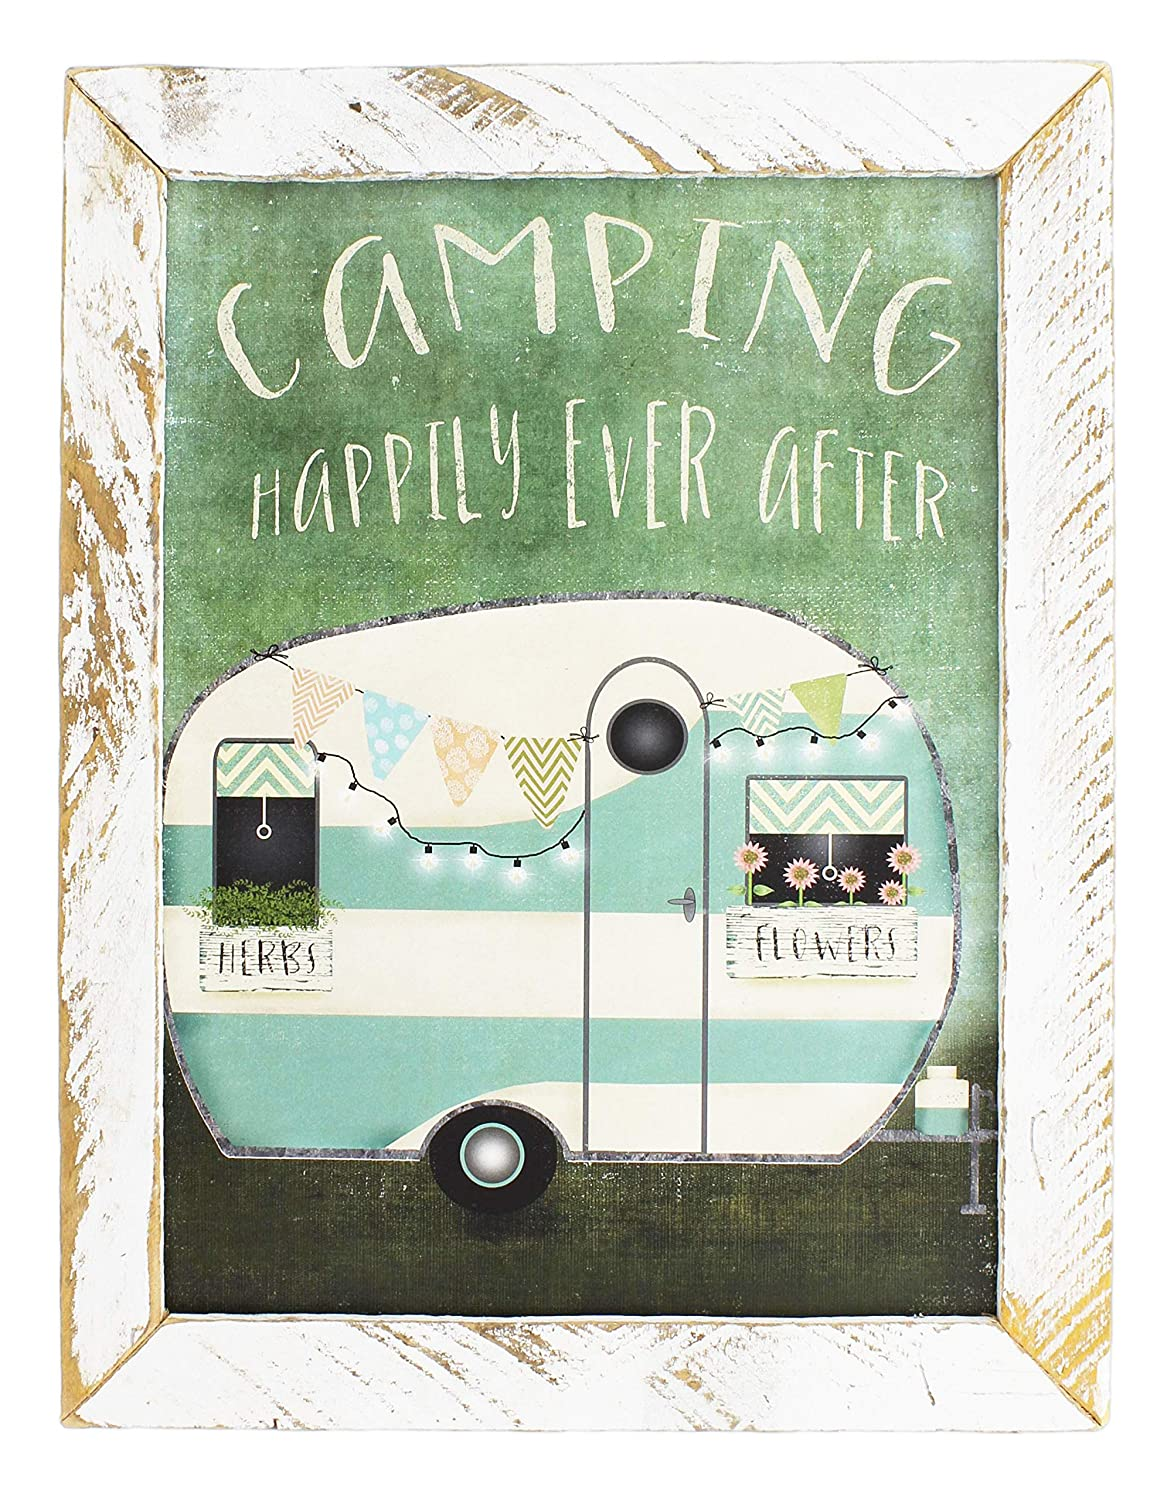 Camping Happily Ever After Jan Michaels Rustic Whitewash Wood Framed Art